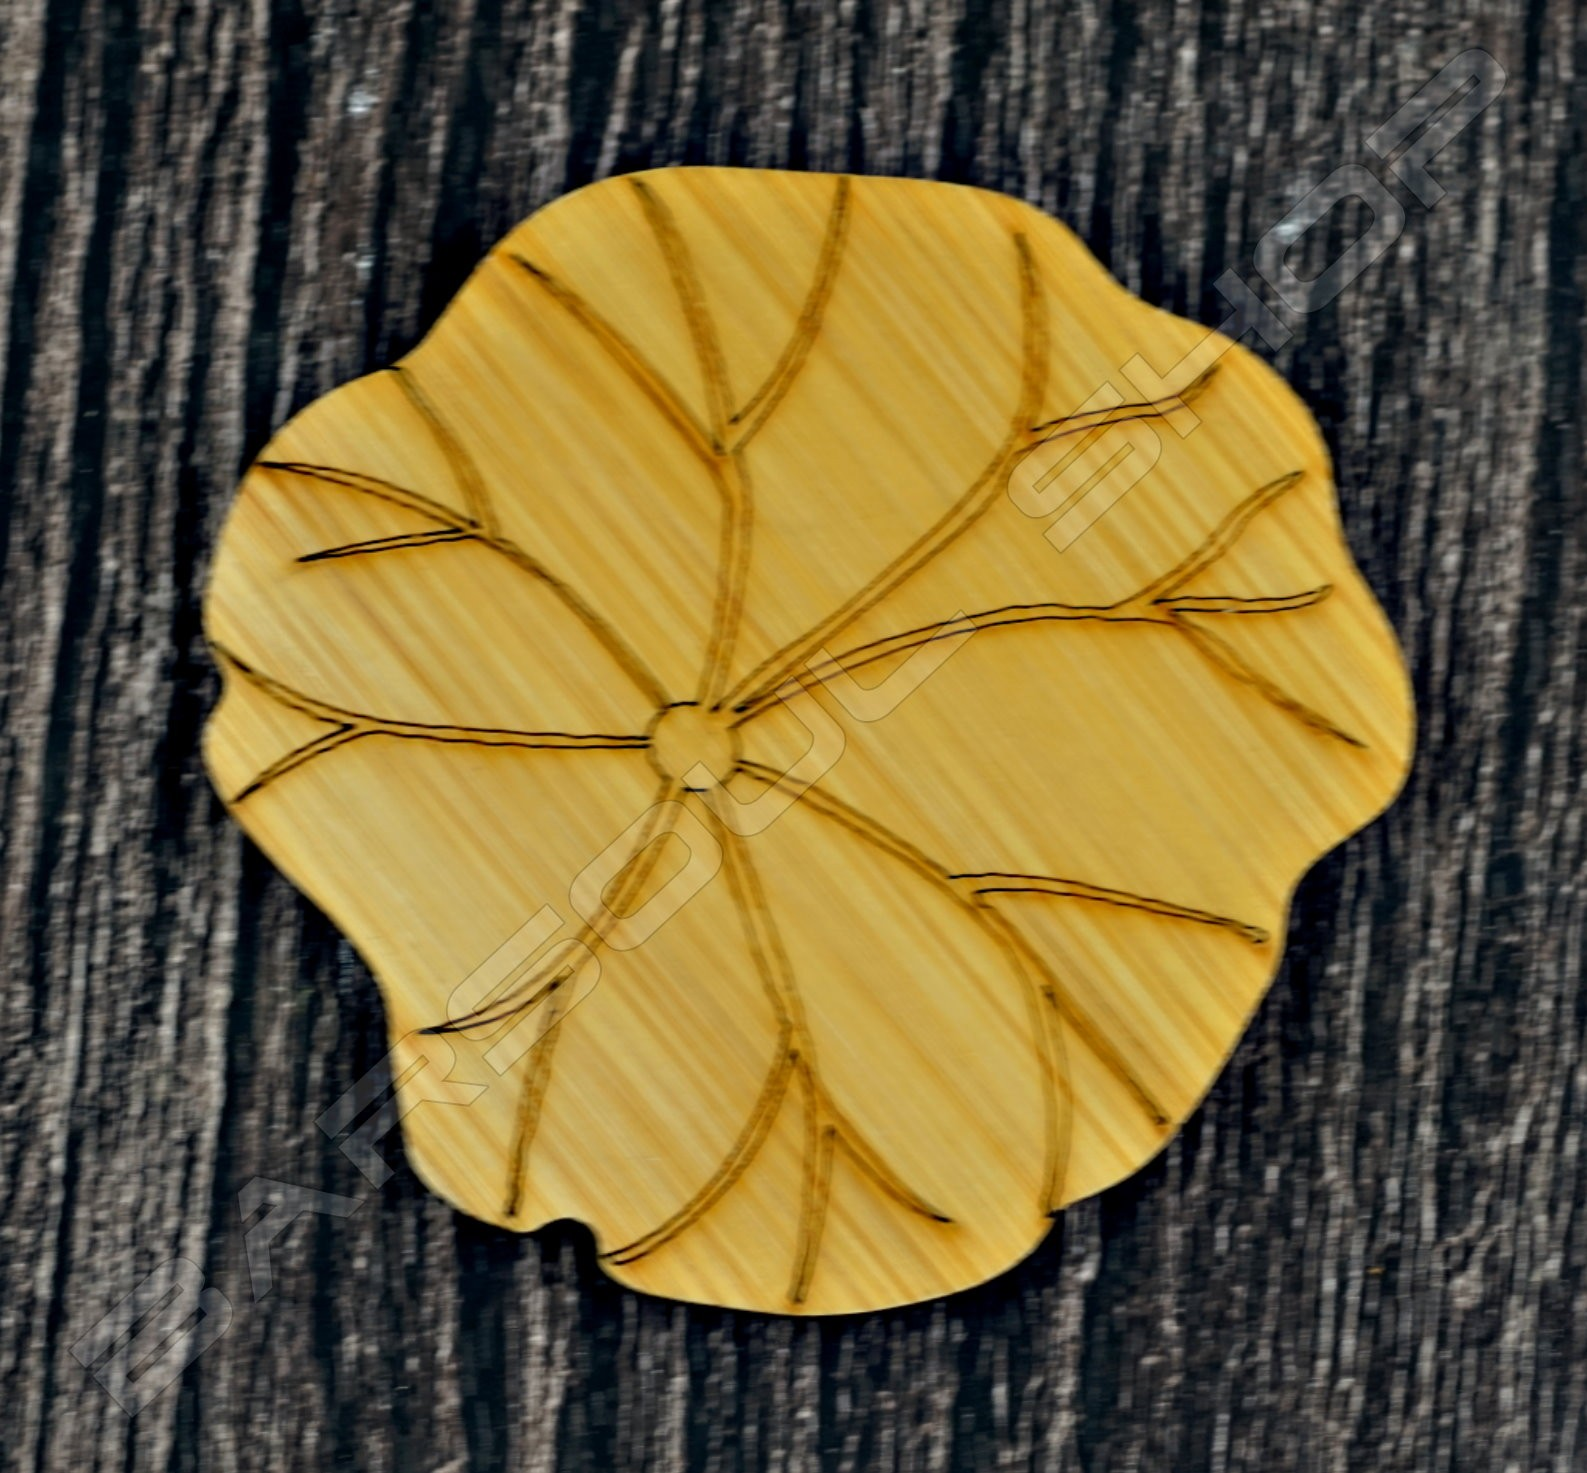 荷葉竹杯墊 Lotus leaf bamboo coaster